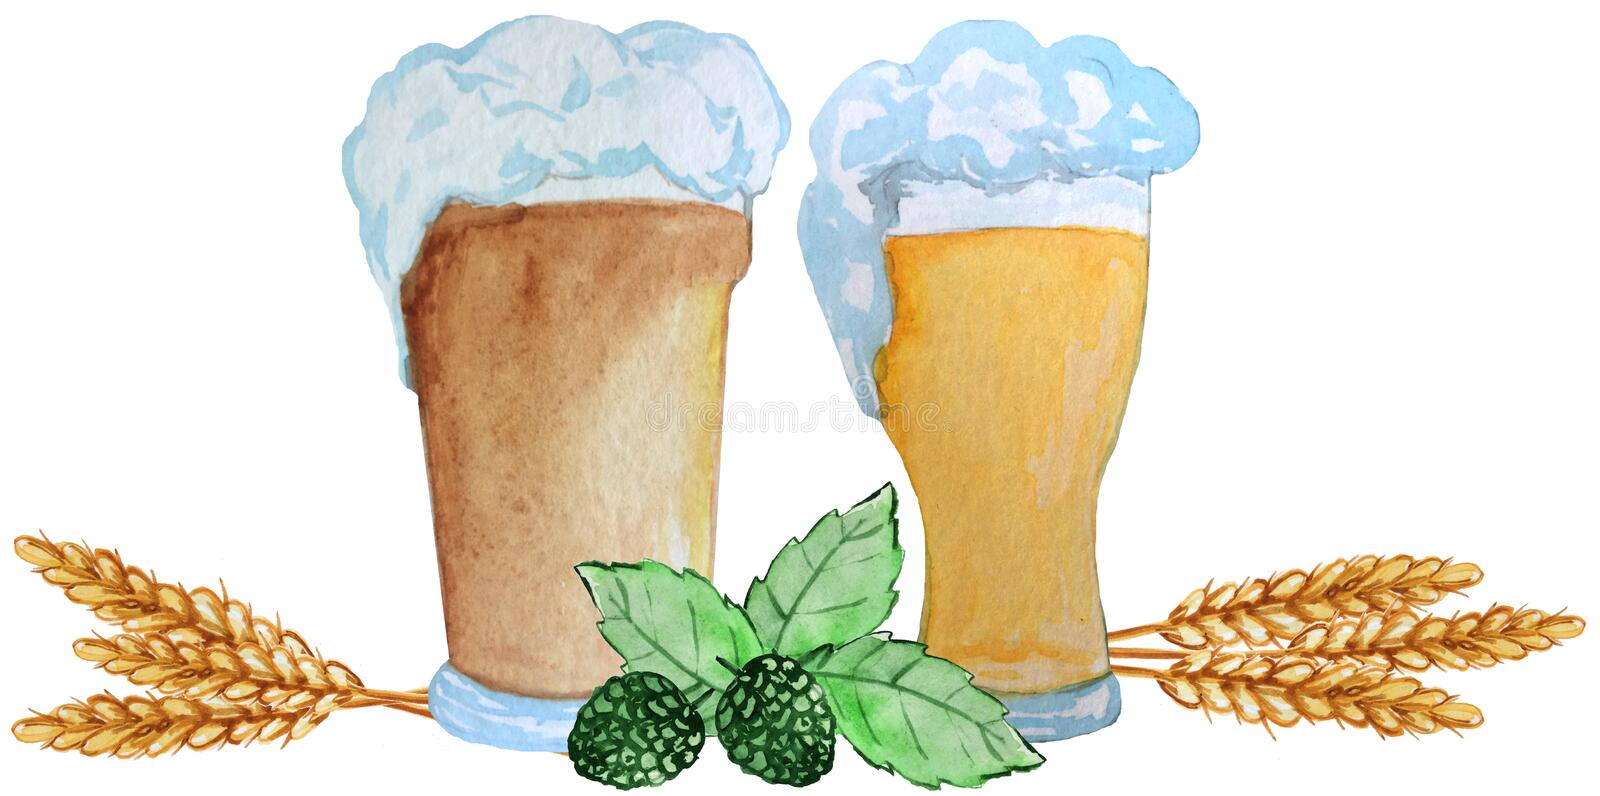 Two glasses of beer with ears of wheat, hop leaves on a white background. watercolor illustration for posters, prints vector illustration